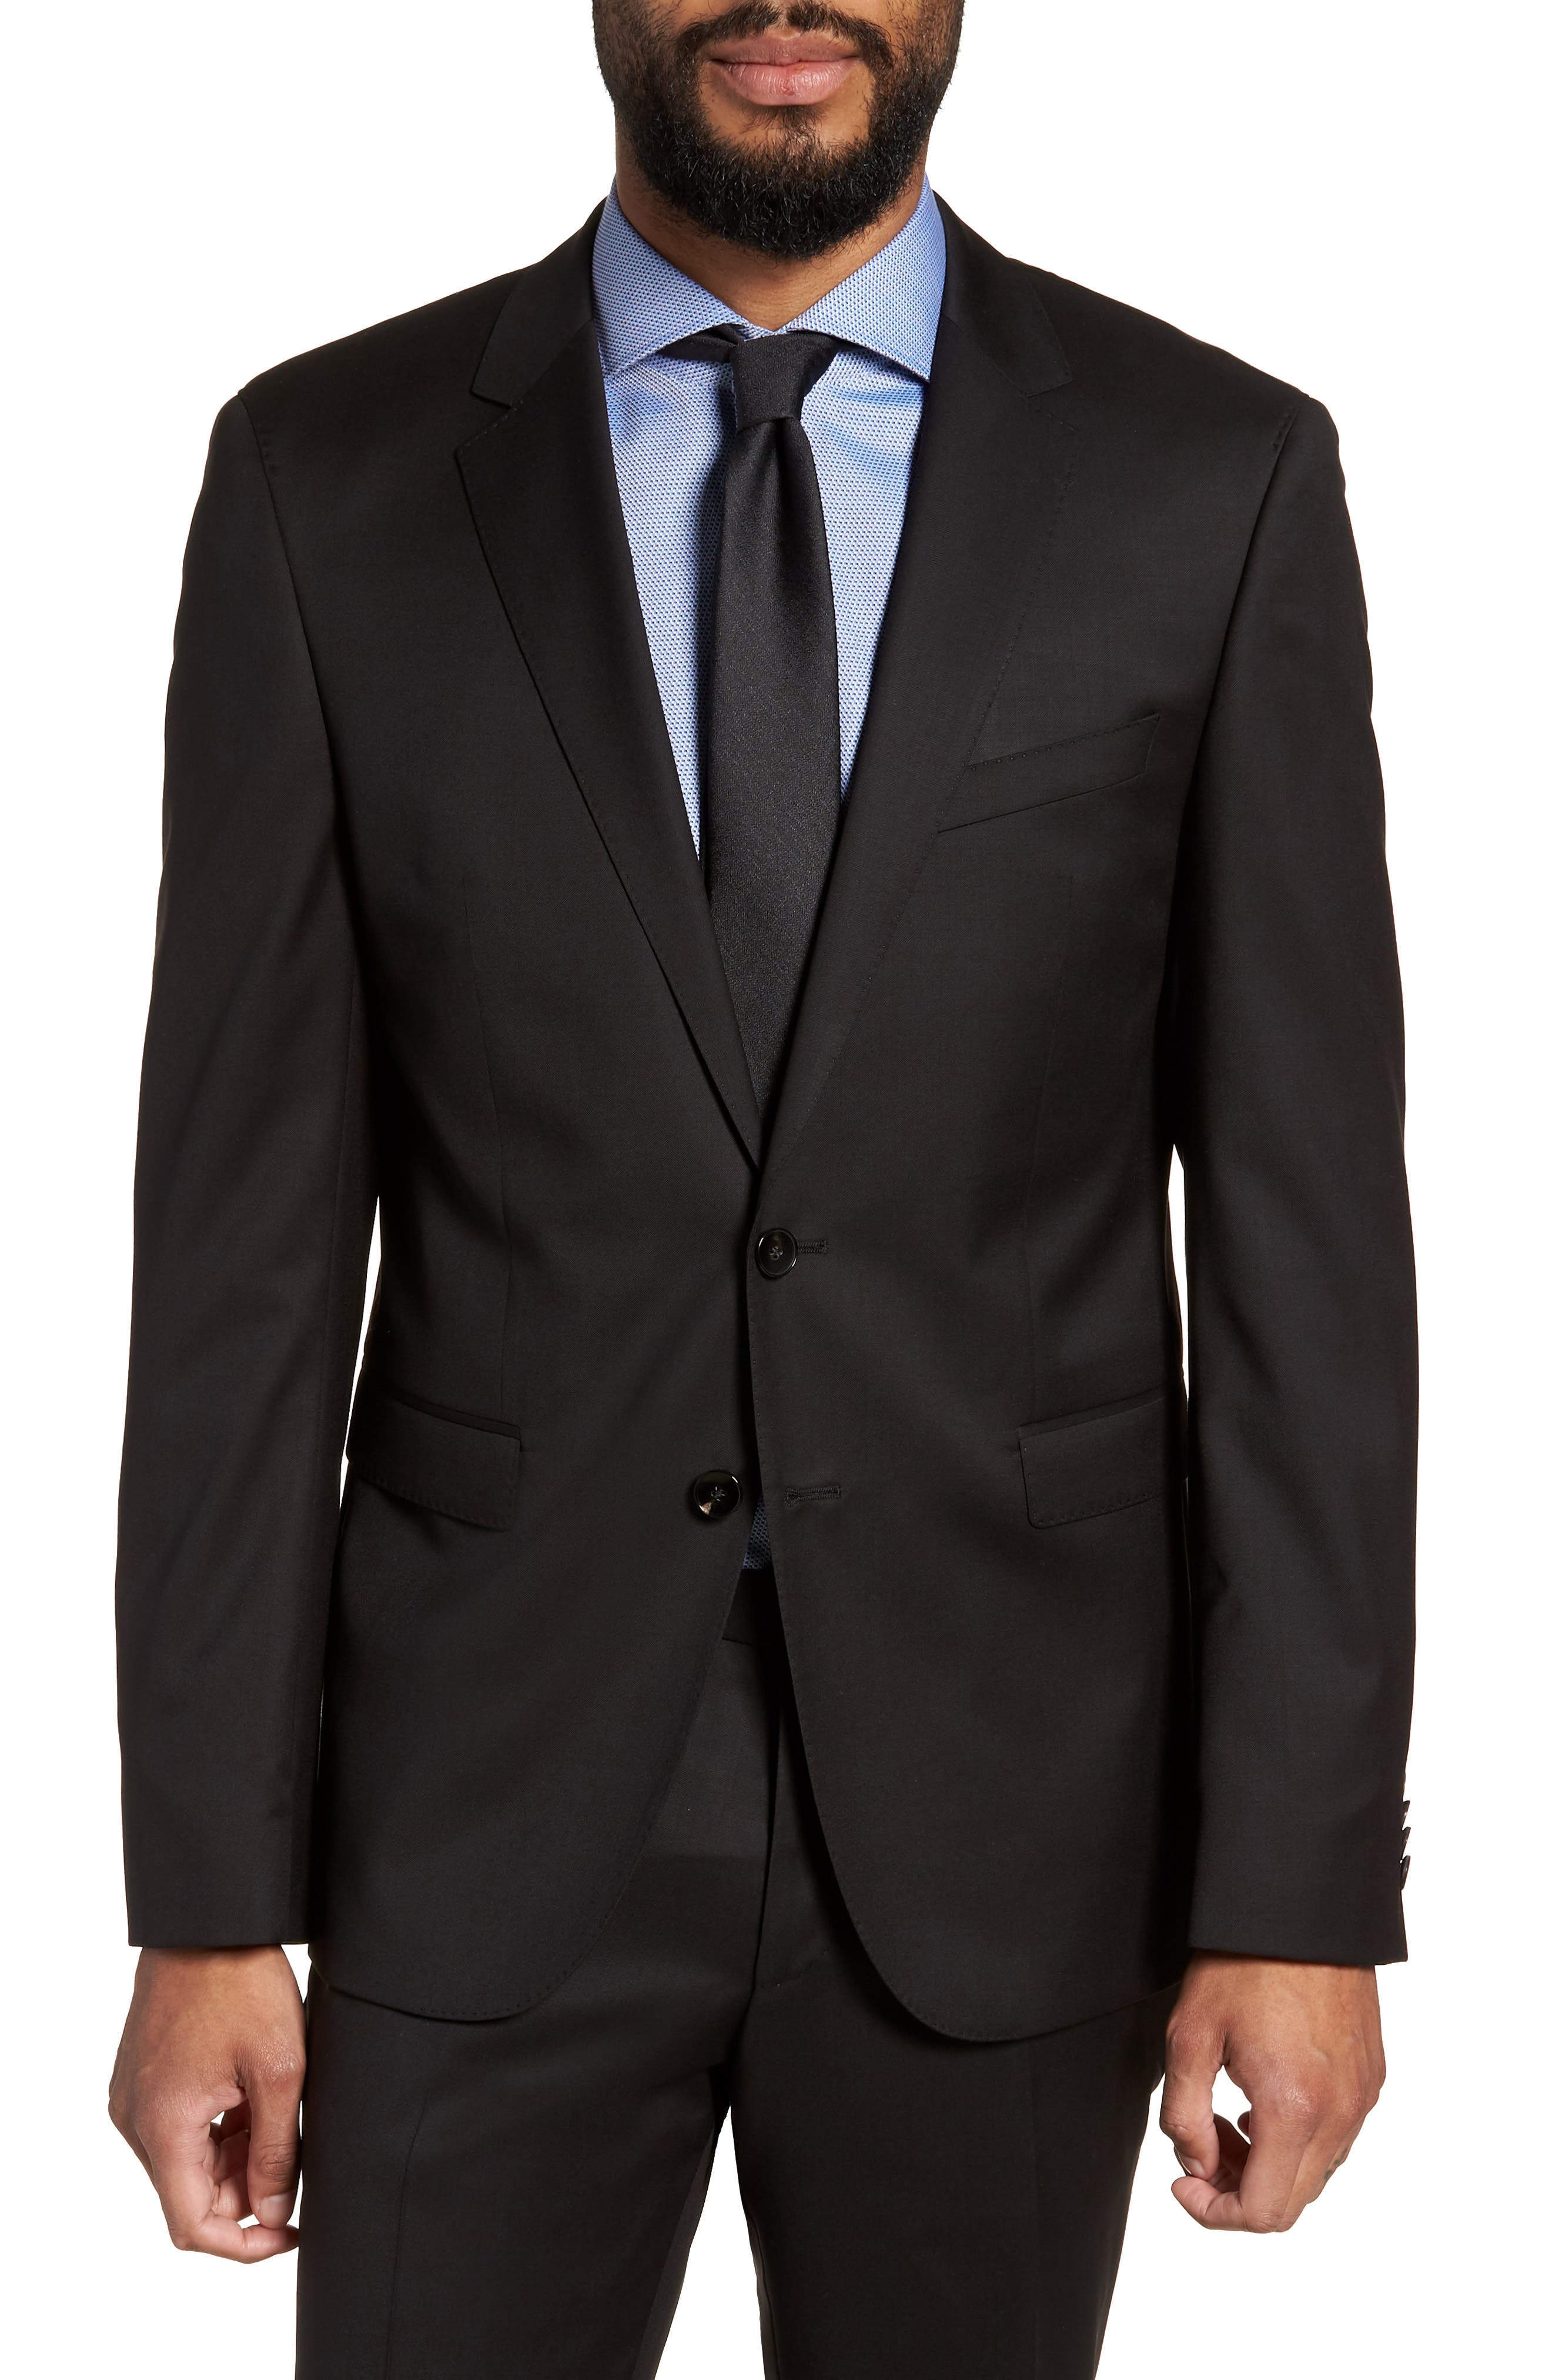 Ryan CYL Extra Trim Fit Solid Wool Sport Coat,                             Main thumbnail 1, color,                             BLACK